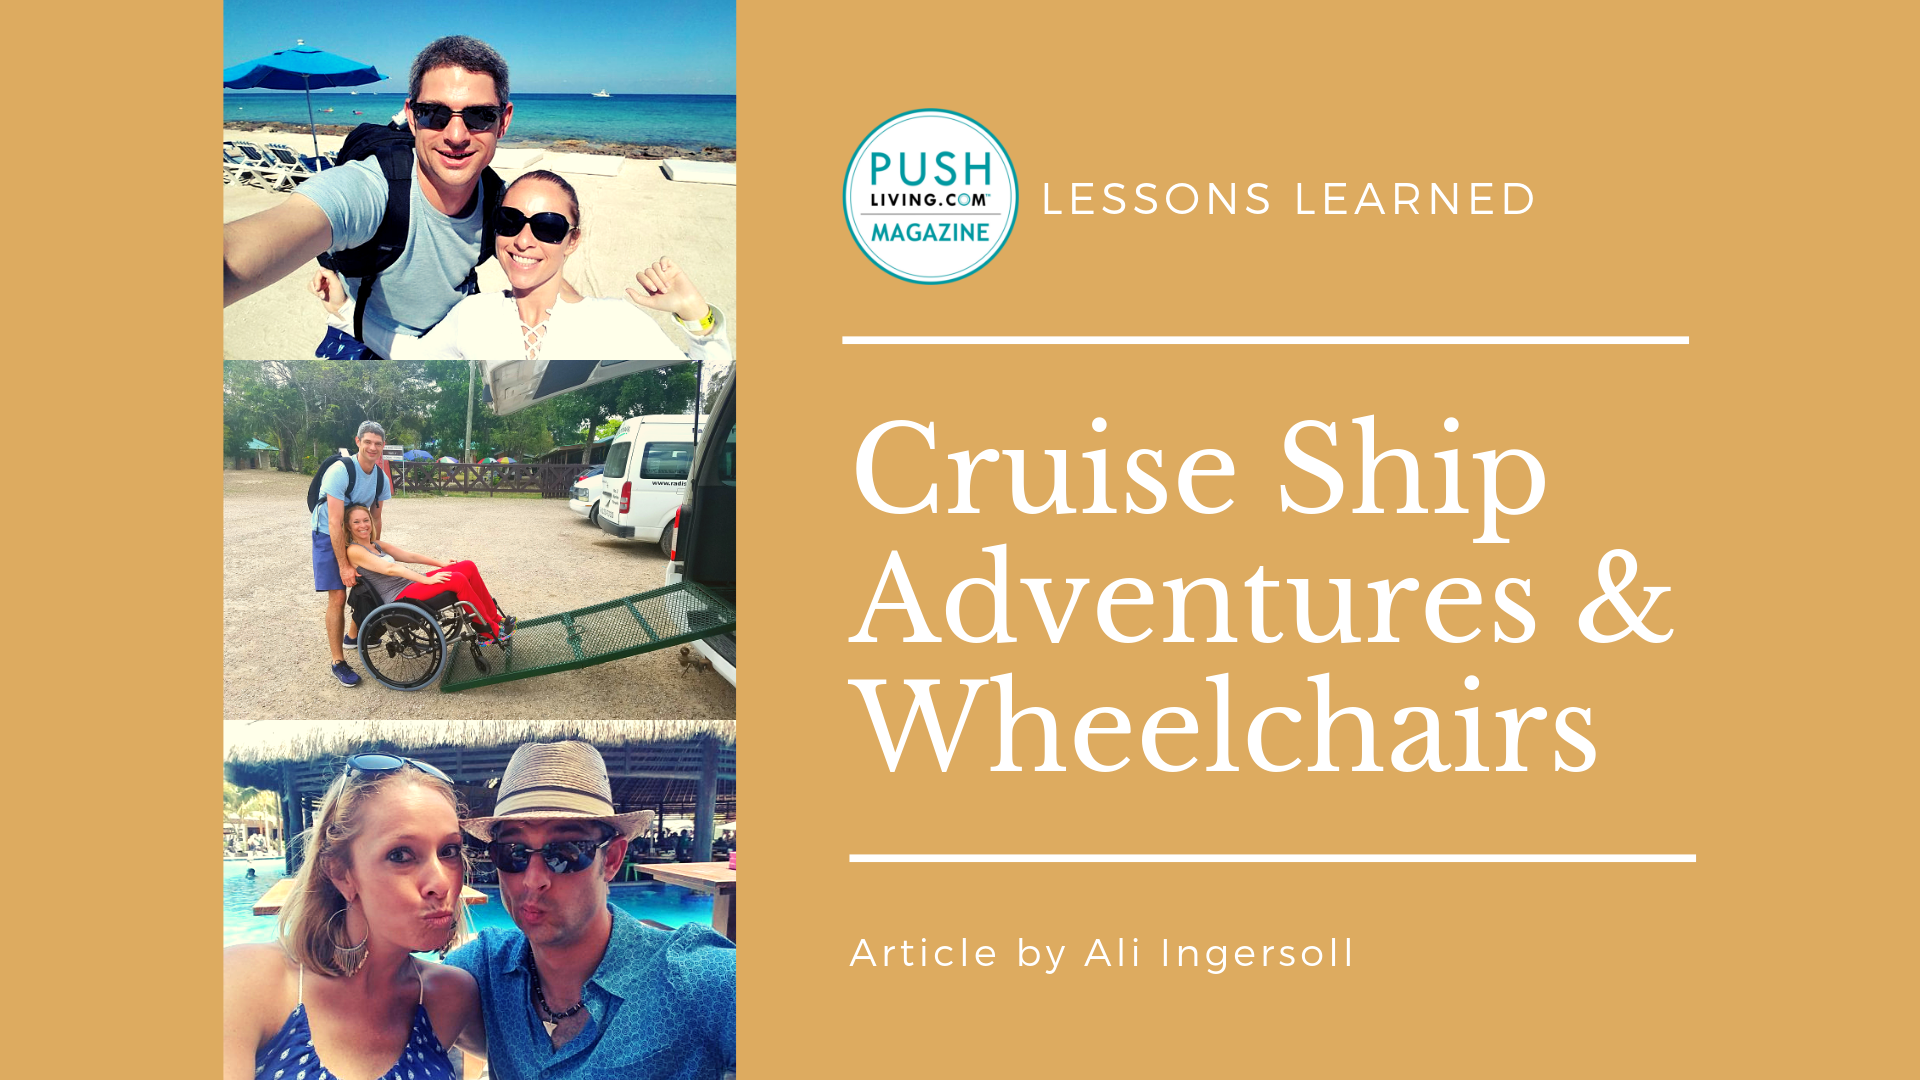 8 29 19 Cover - Cruise Ship Adventures & Wheelchairs - Lessons Learned